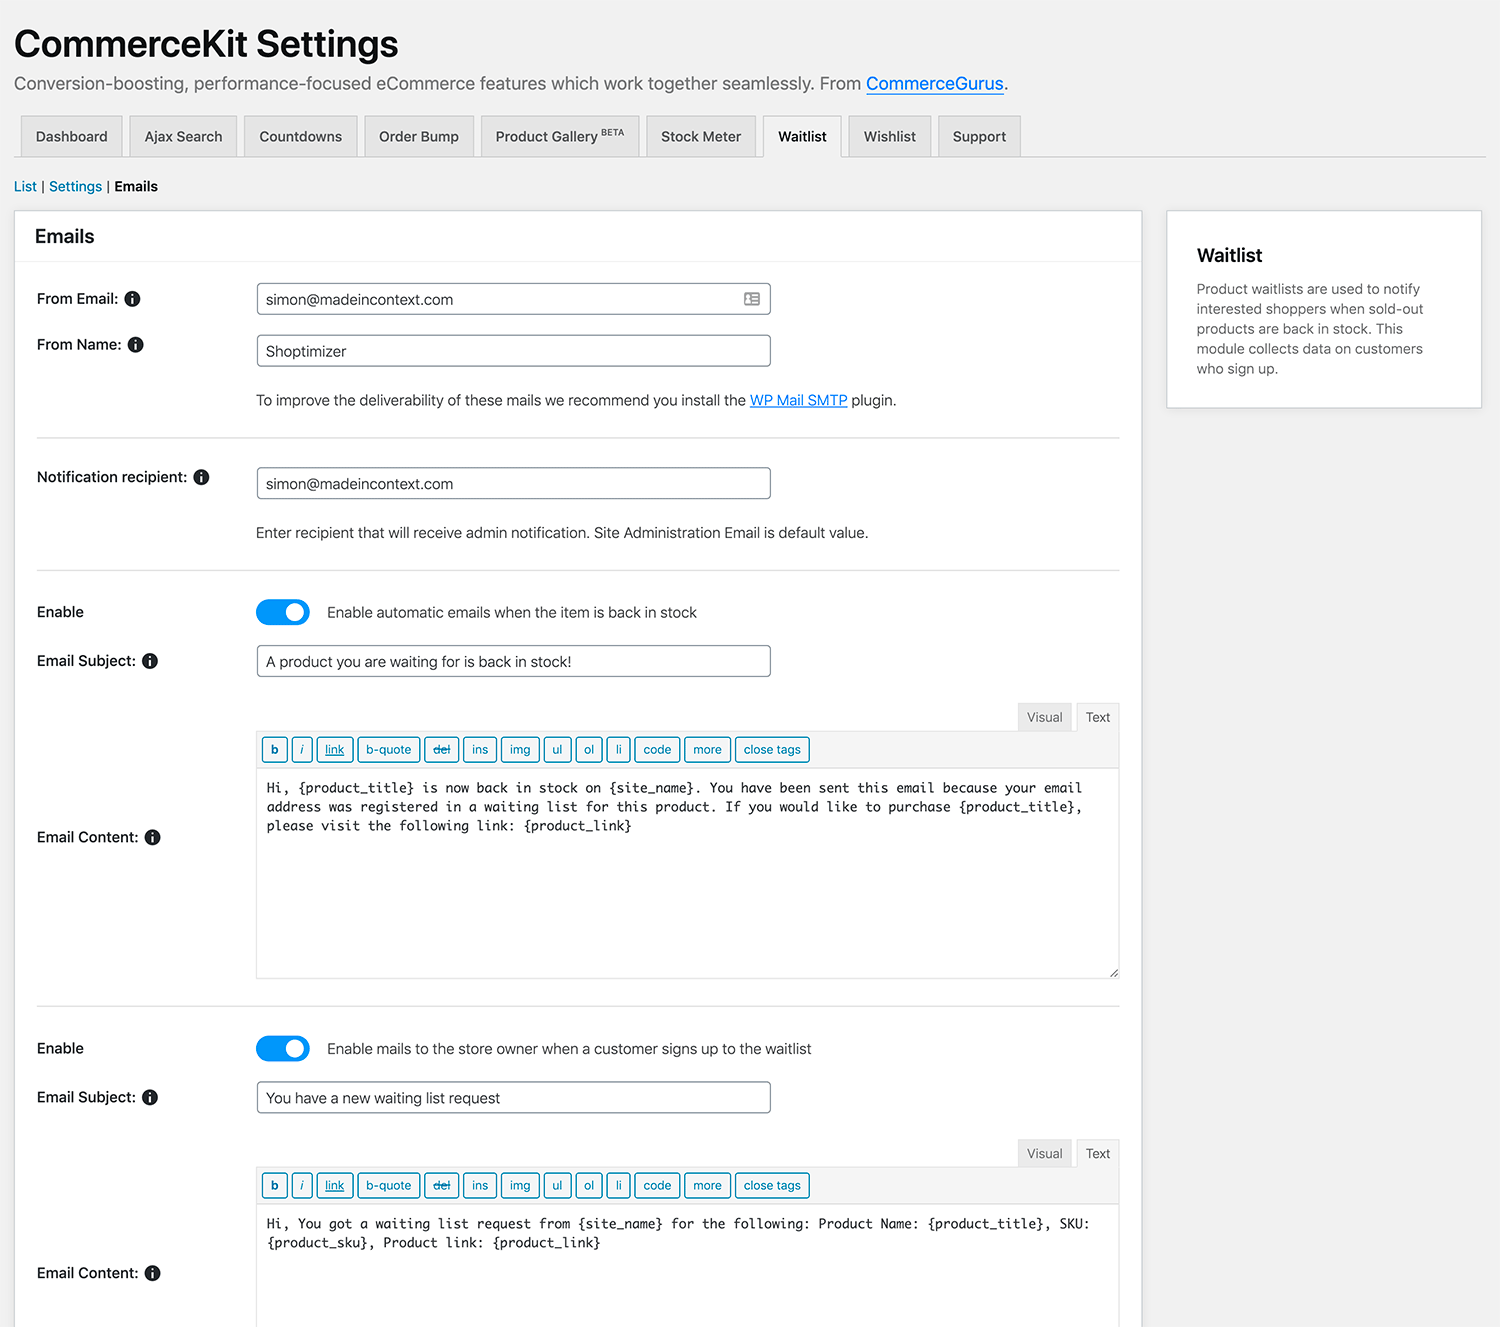 Waitlist email settings